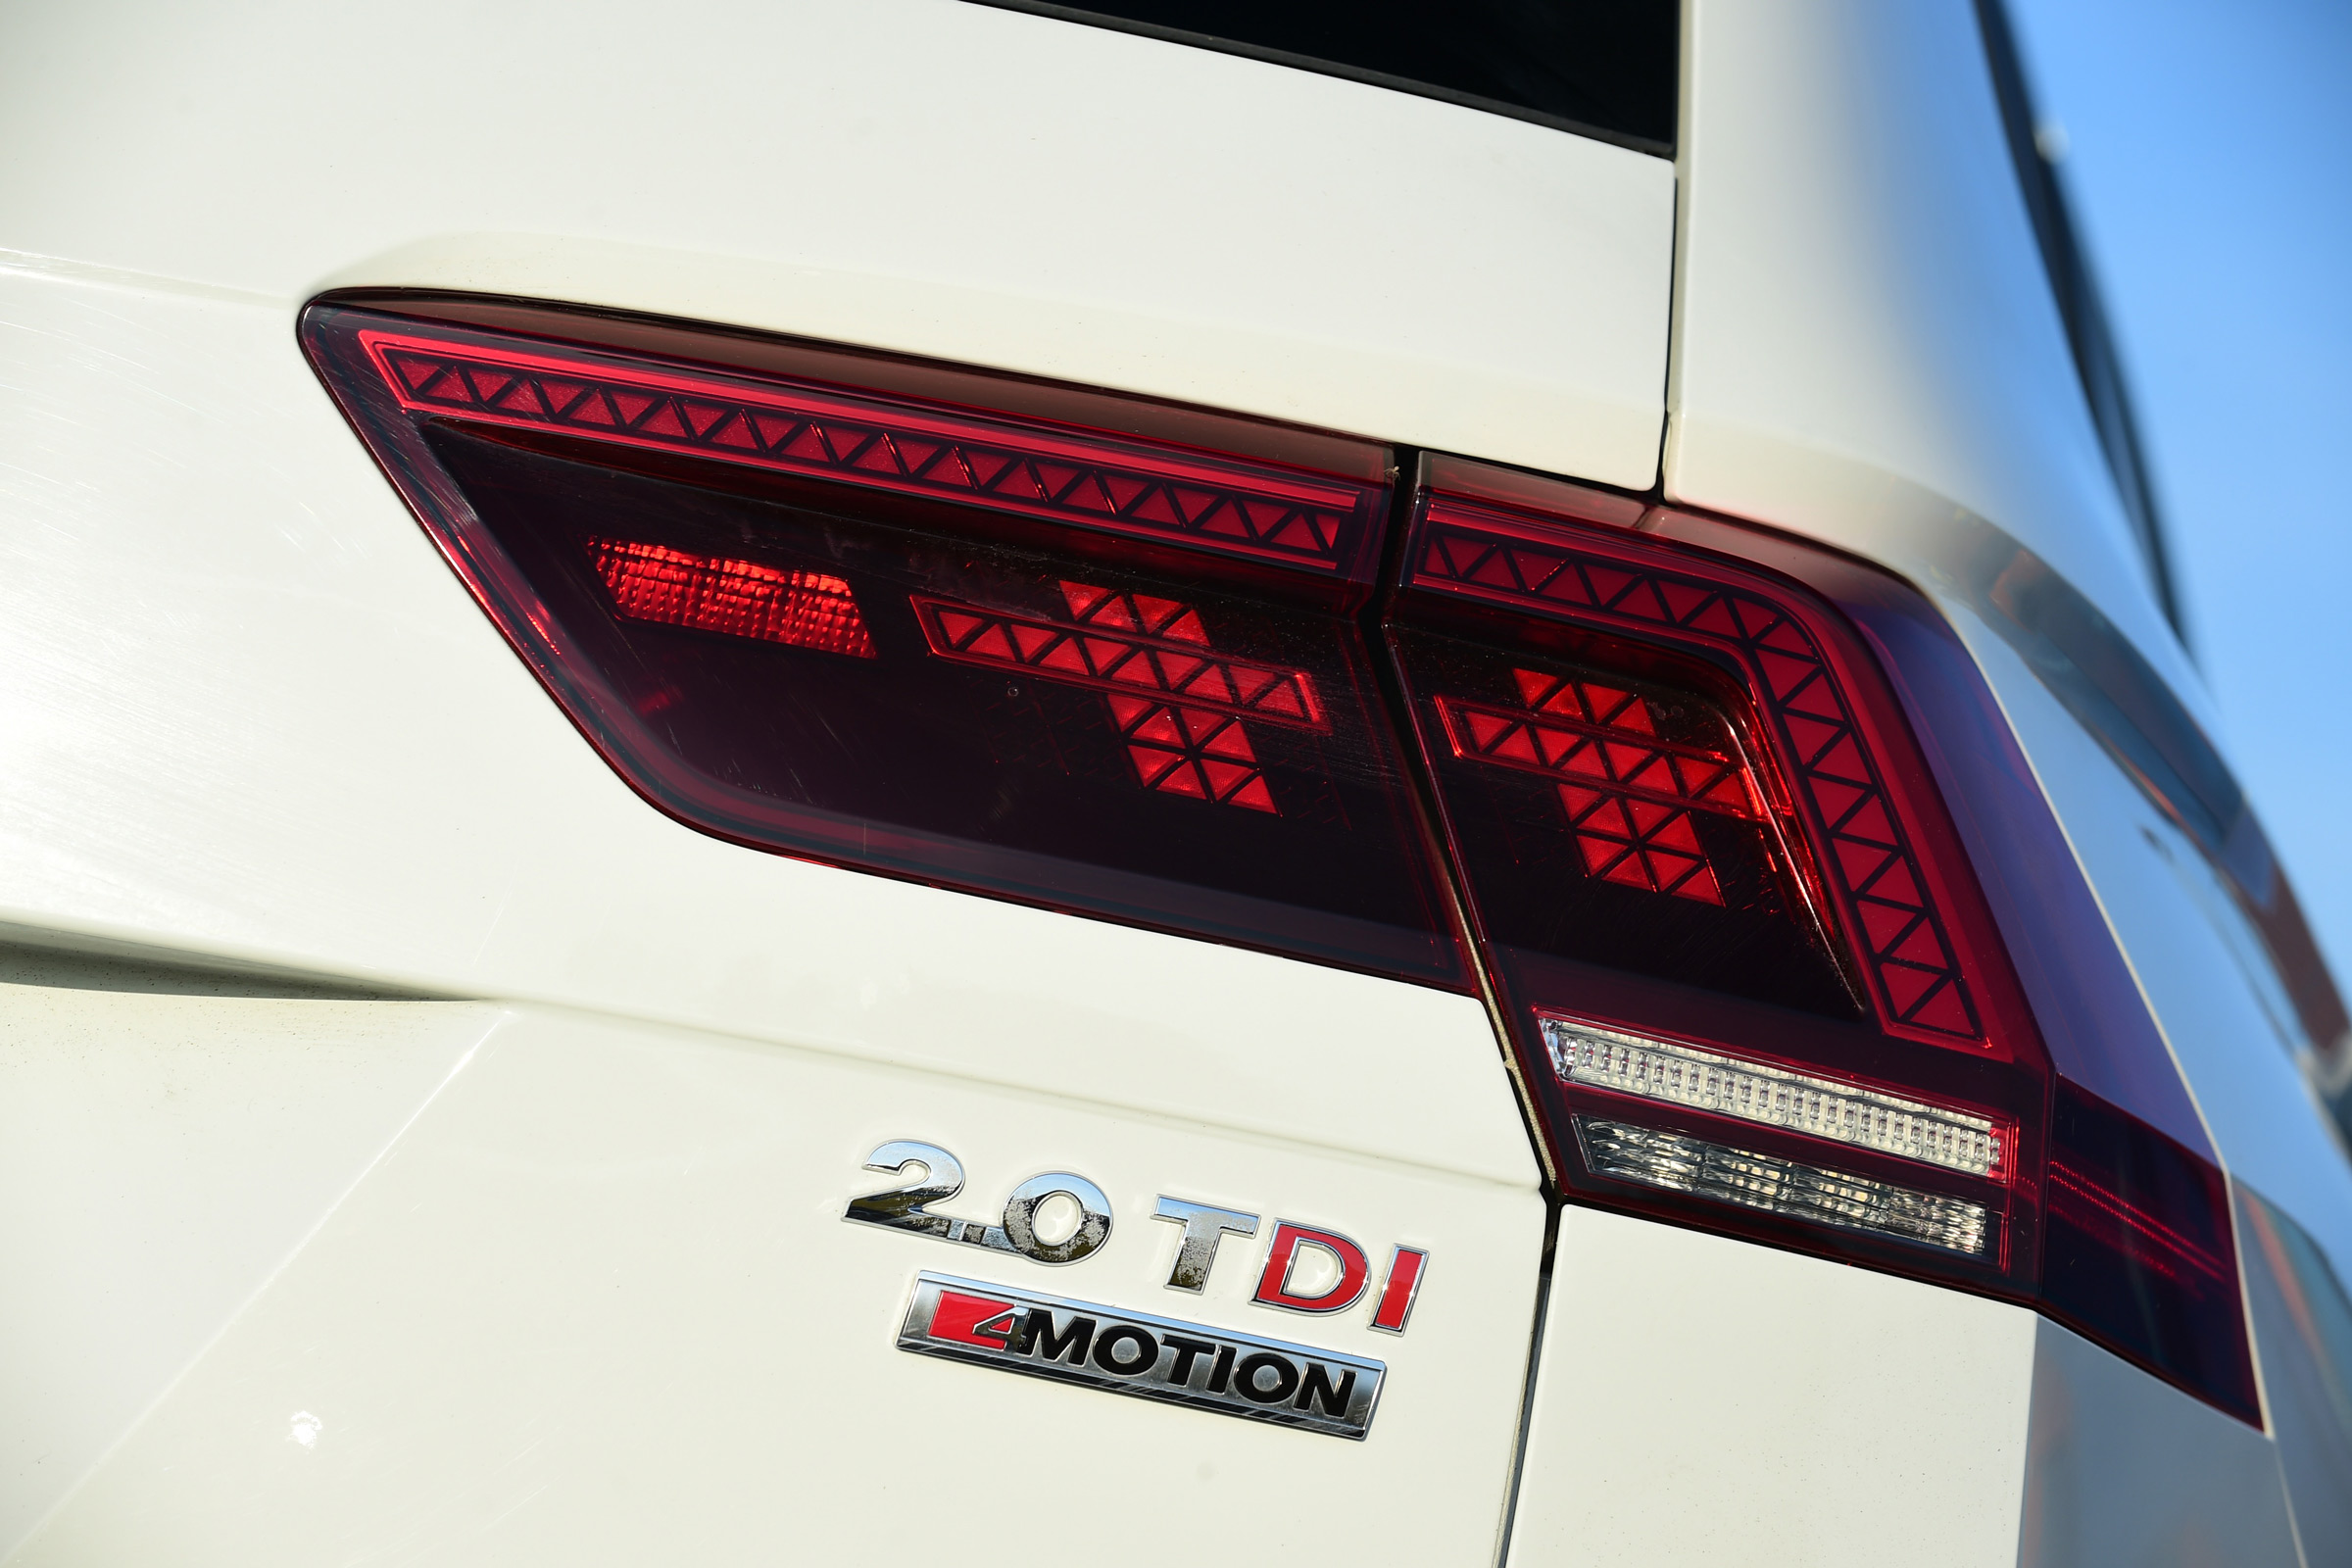 2017 Volkswagen Tiguan White Exterior View Taillight (Photo 24 of 27)